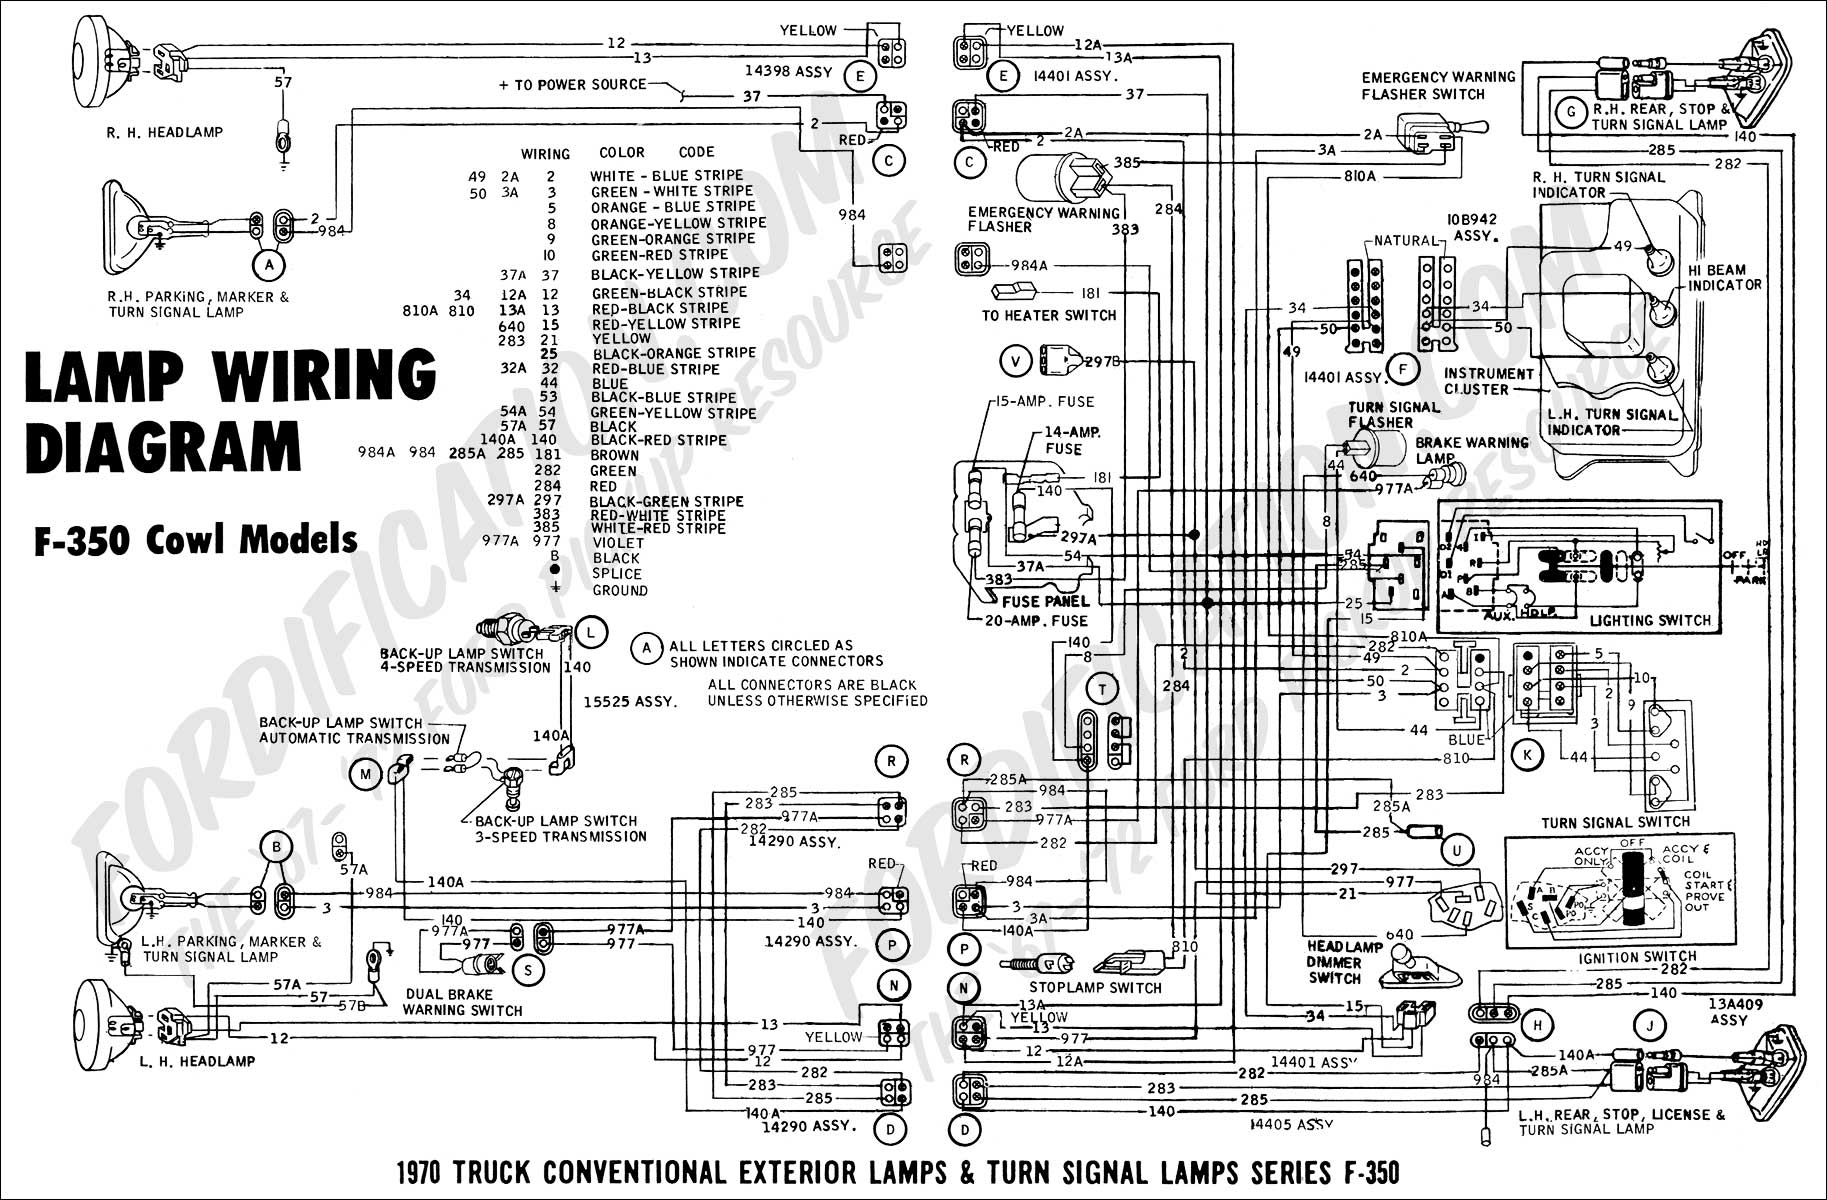 hight resolution of 1999 e350 wiring diagram wiring diagram today 1999 e350 wiring diagram